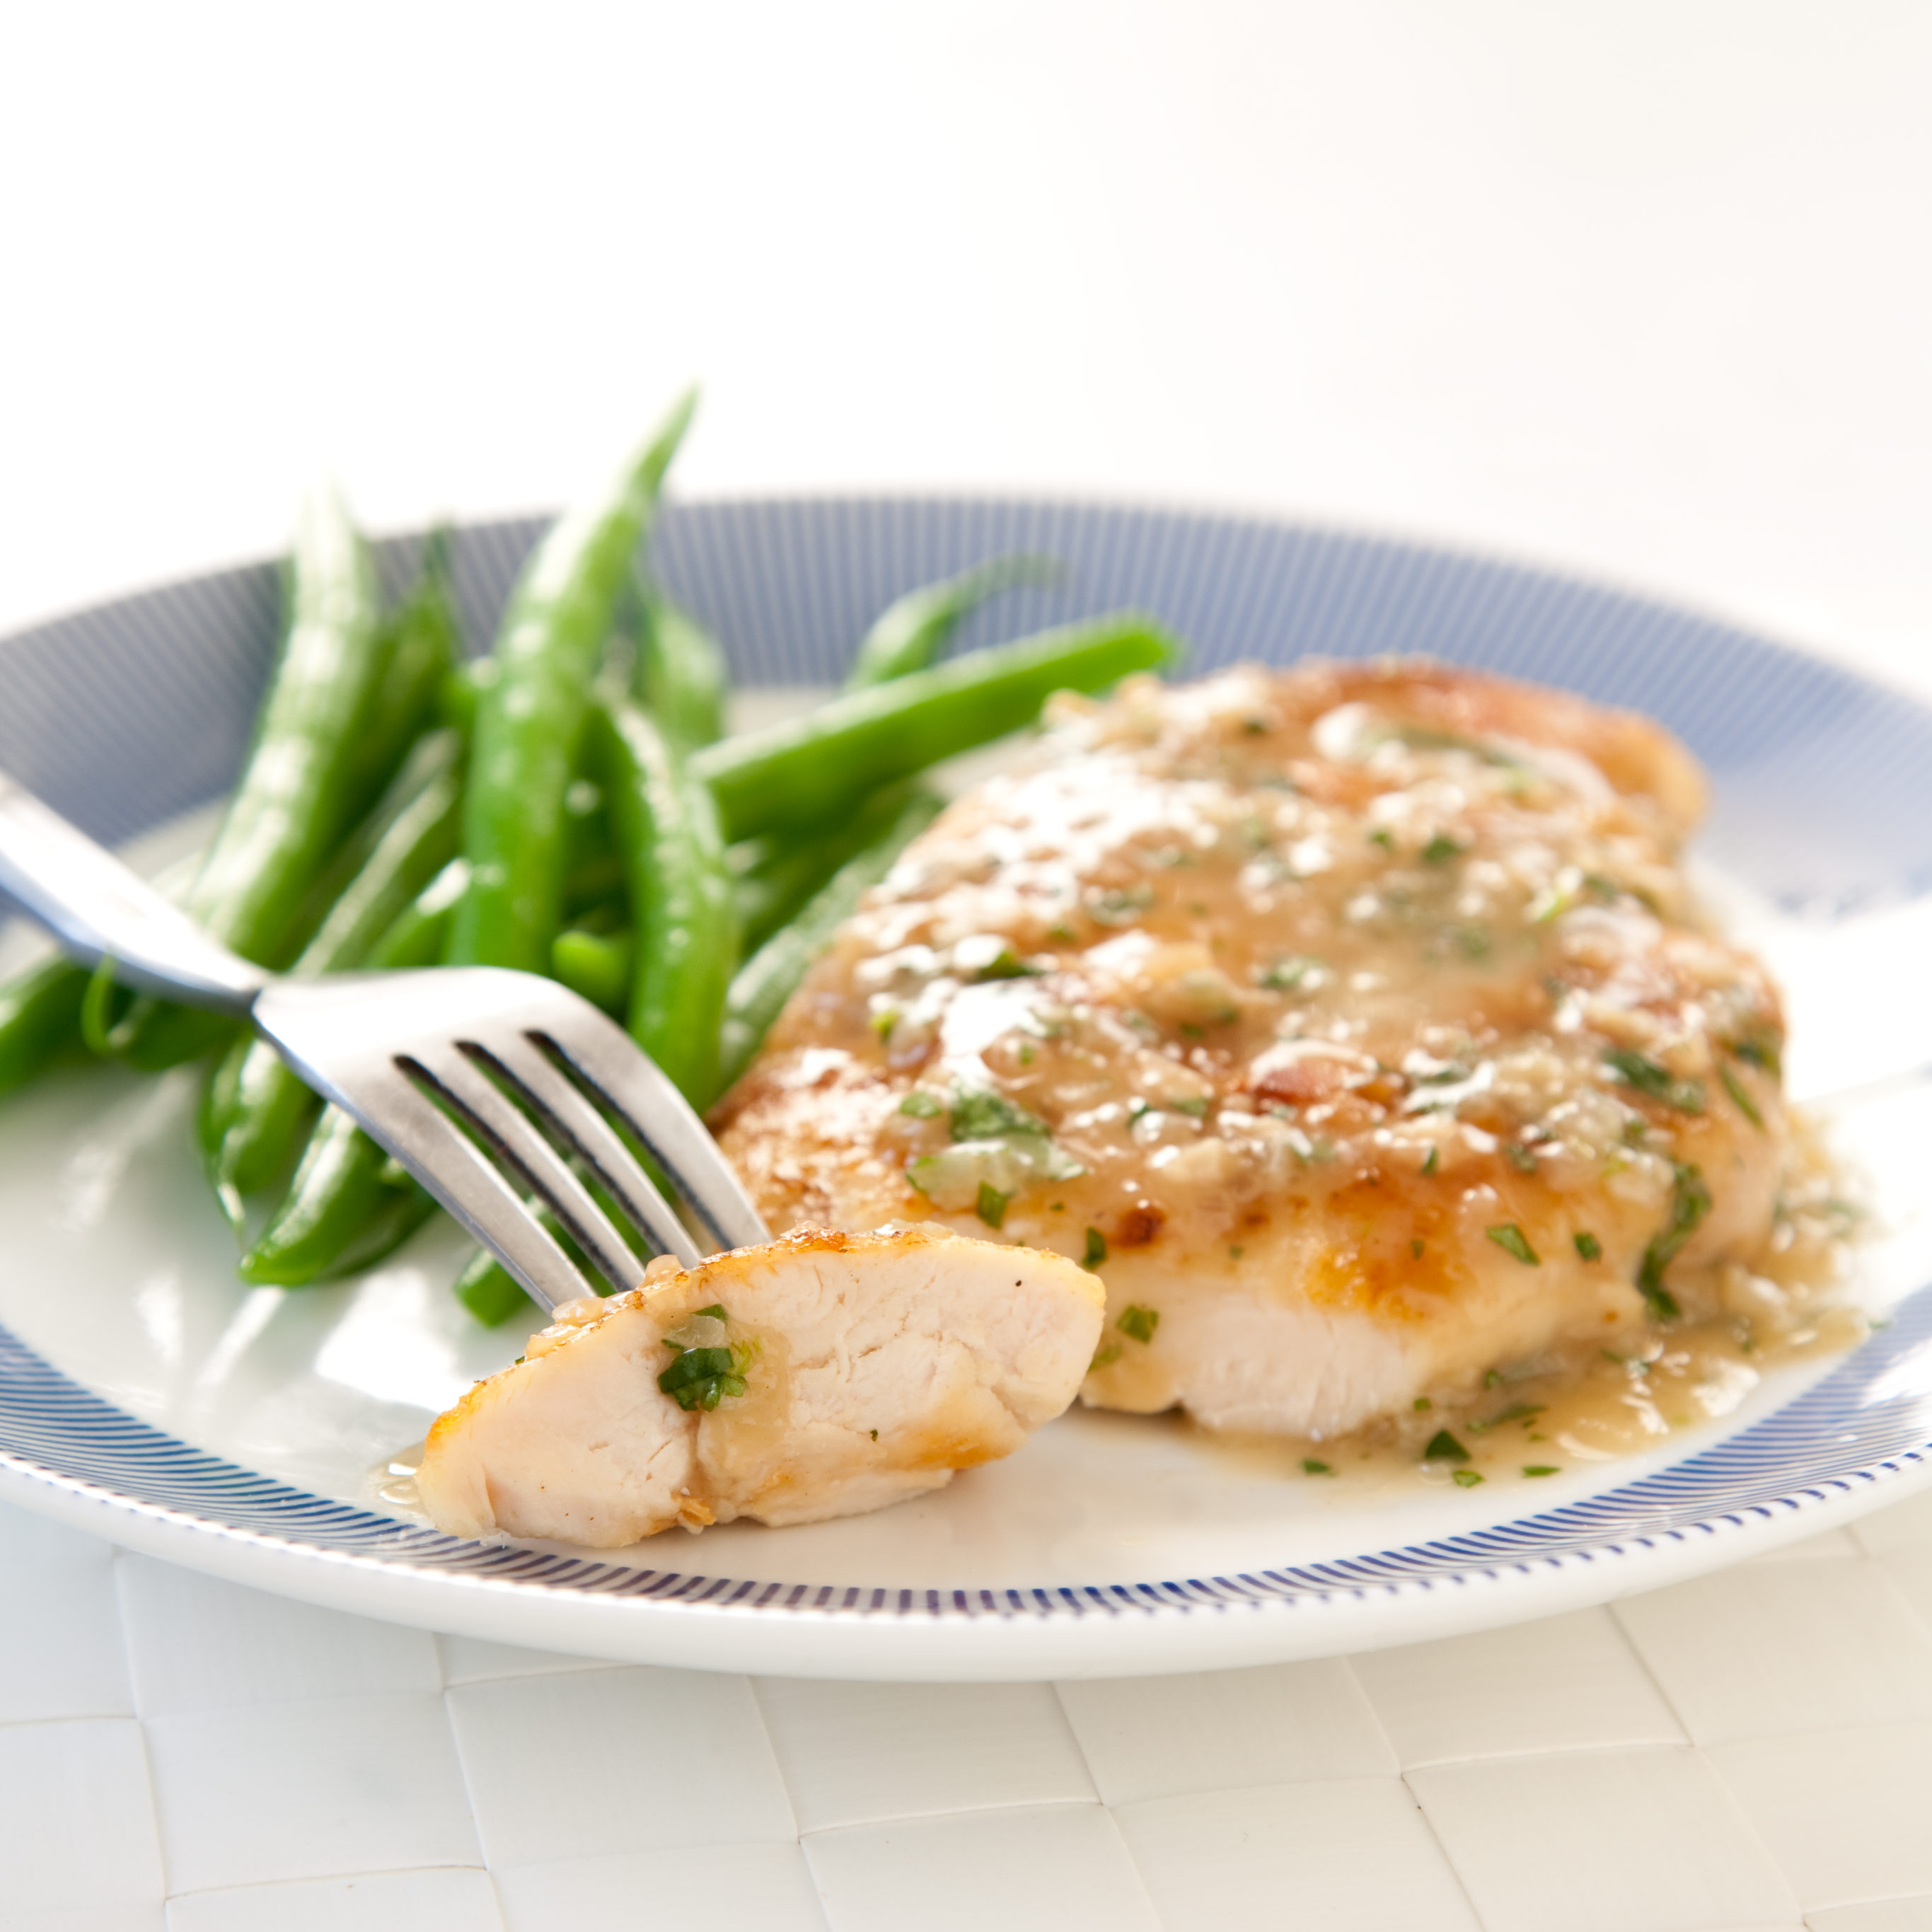 Light Sautéed Chicken Breasts With A White Wine And Herb